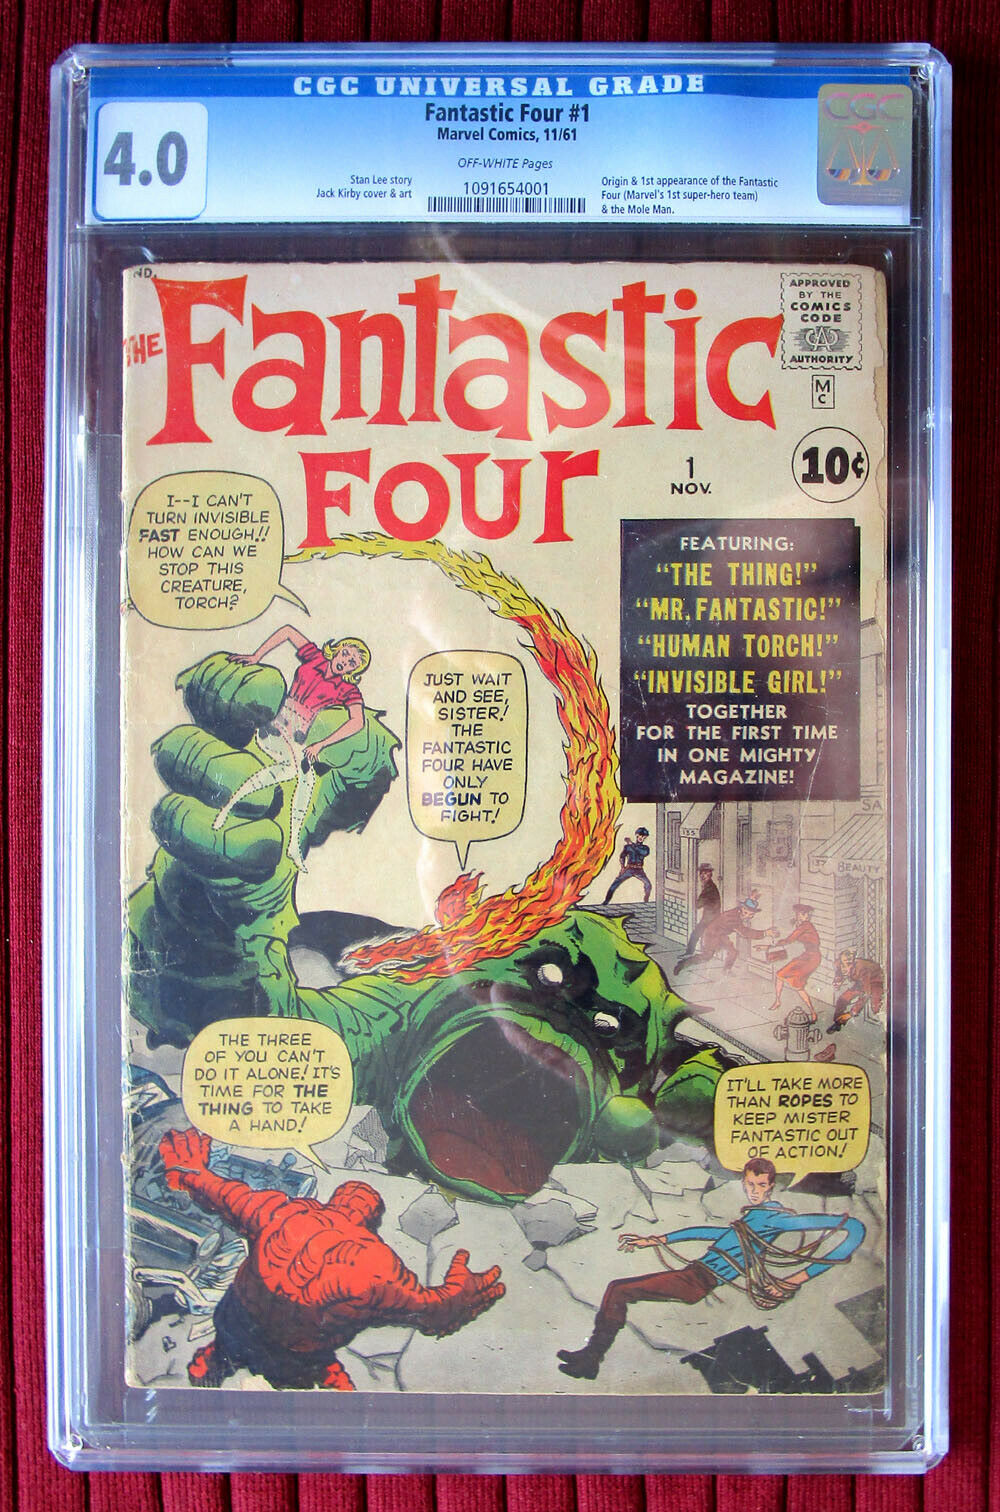 FANTASTIC FOUR #1  CGC 4.0  OFF-WHITE PAGES  ORIGIN AND 1ST APPEARANCE OF FF